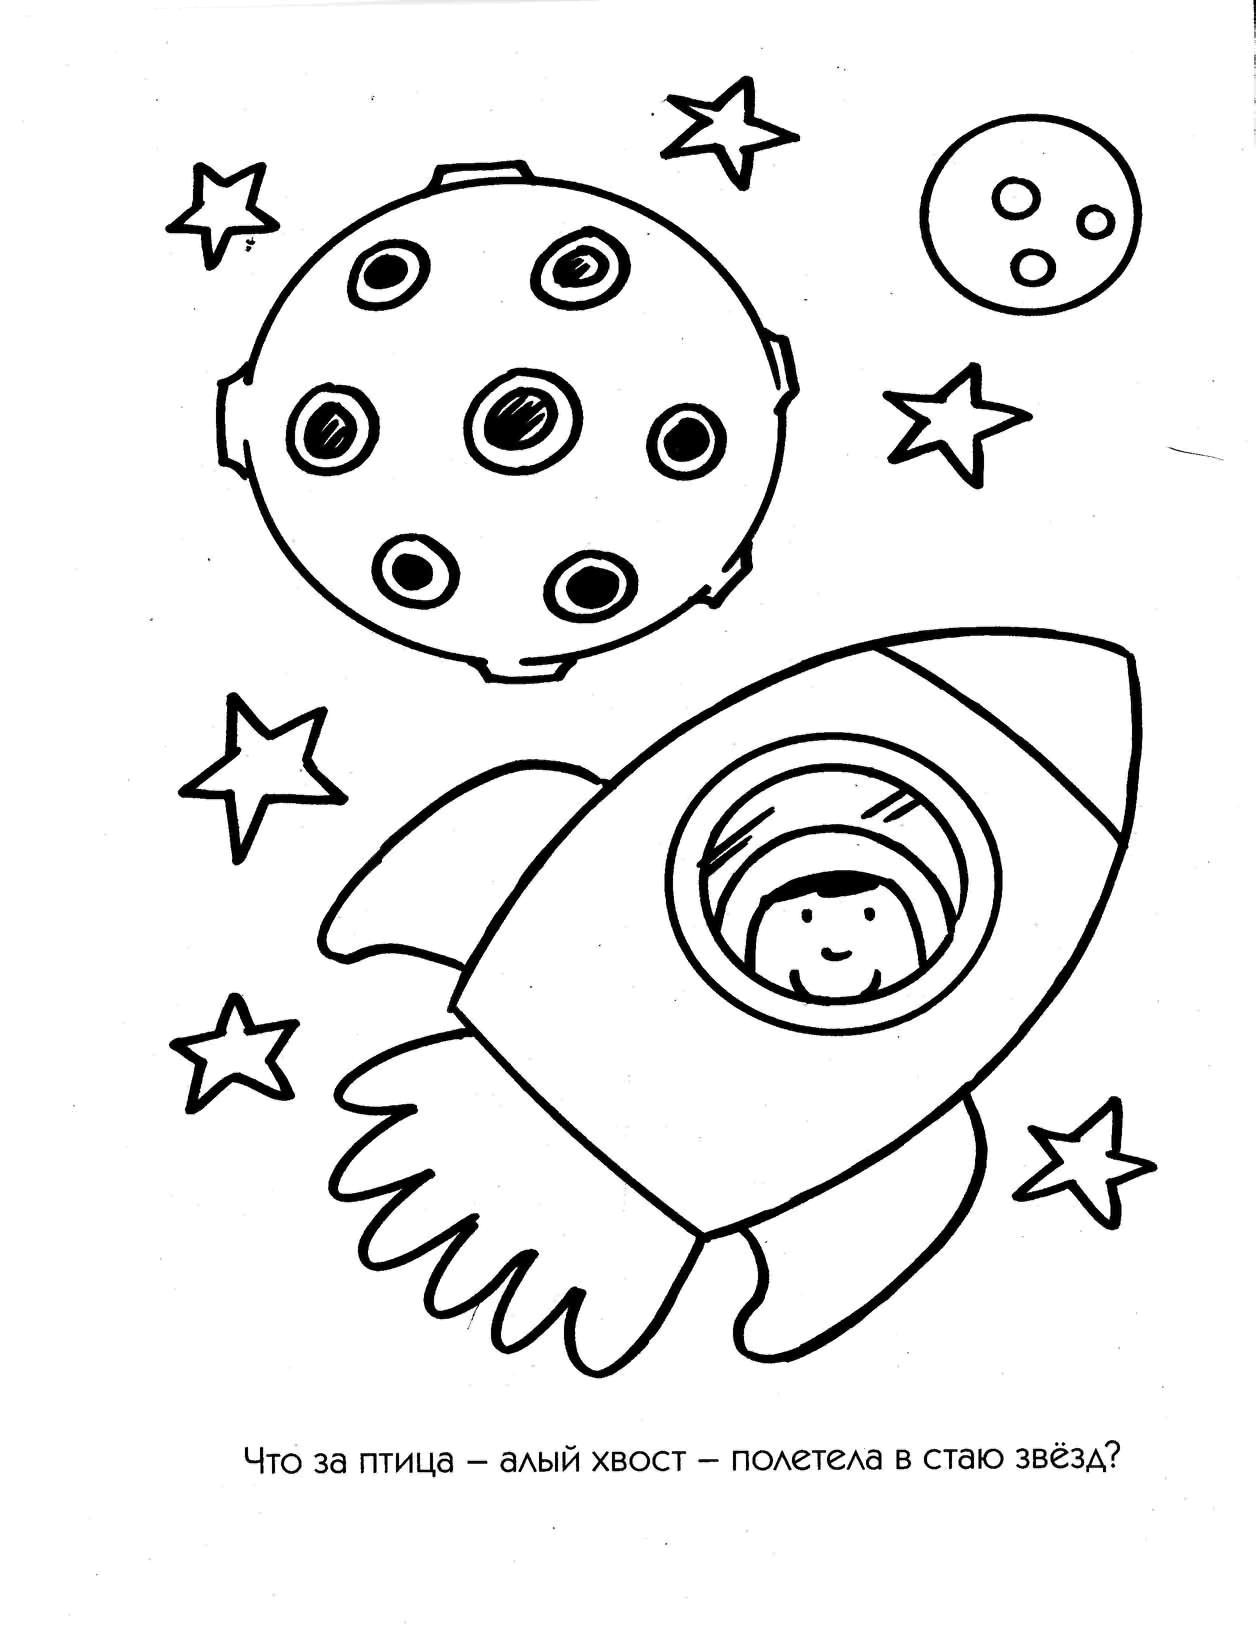 Coloring Boys space rocket, space coloring pages